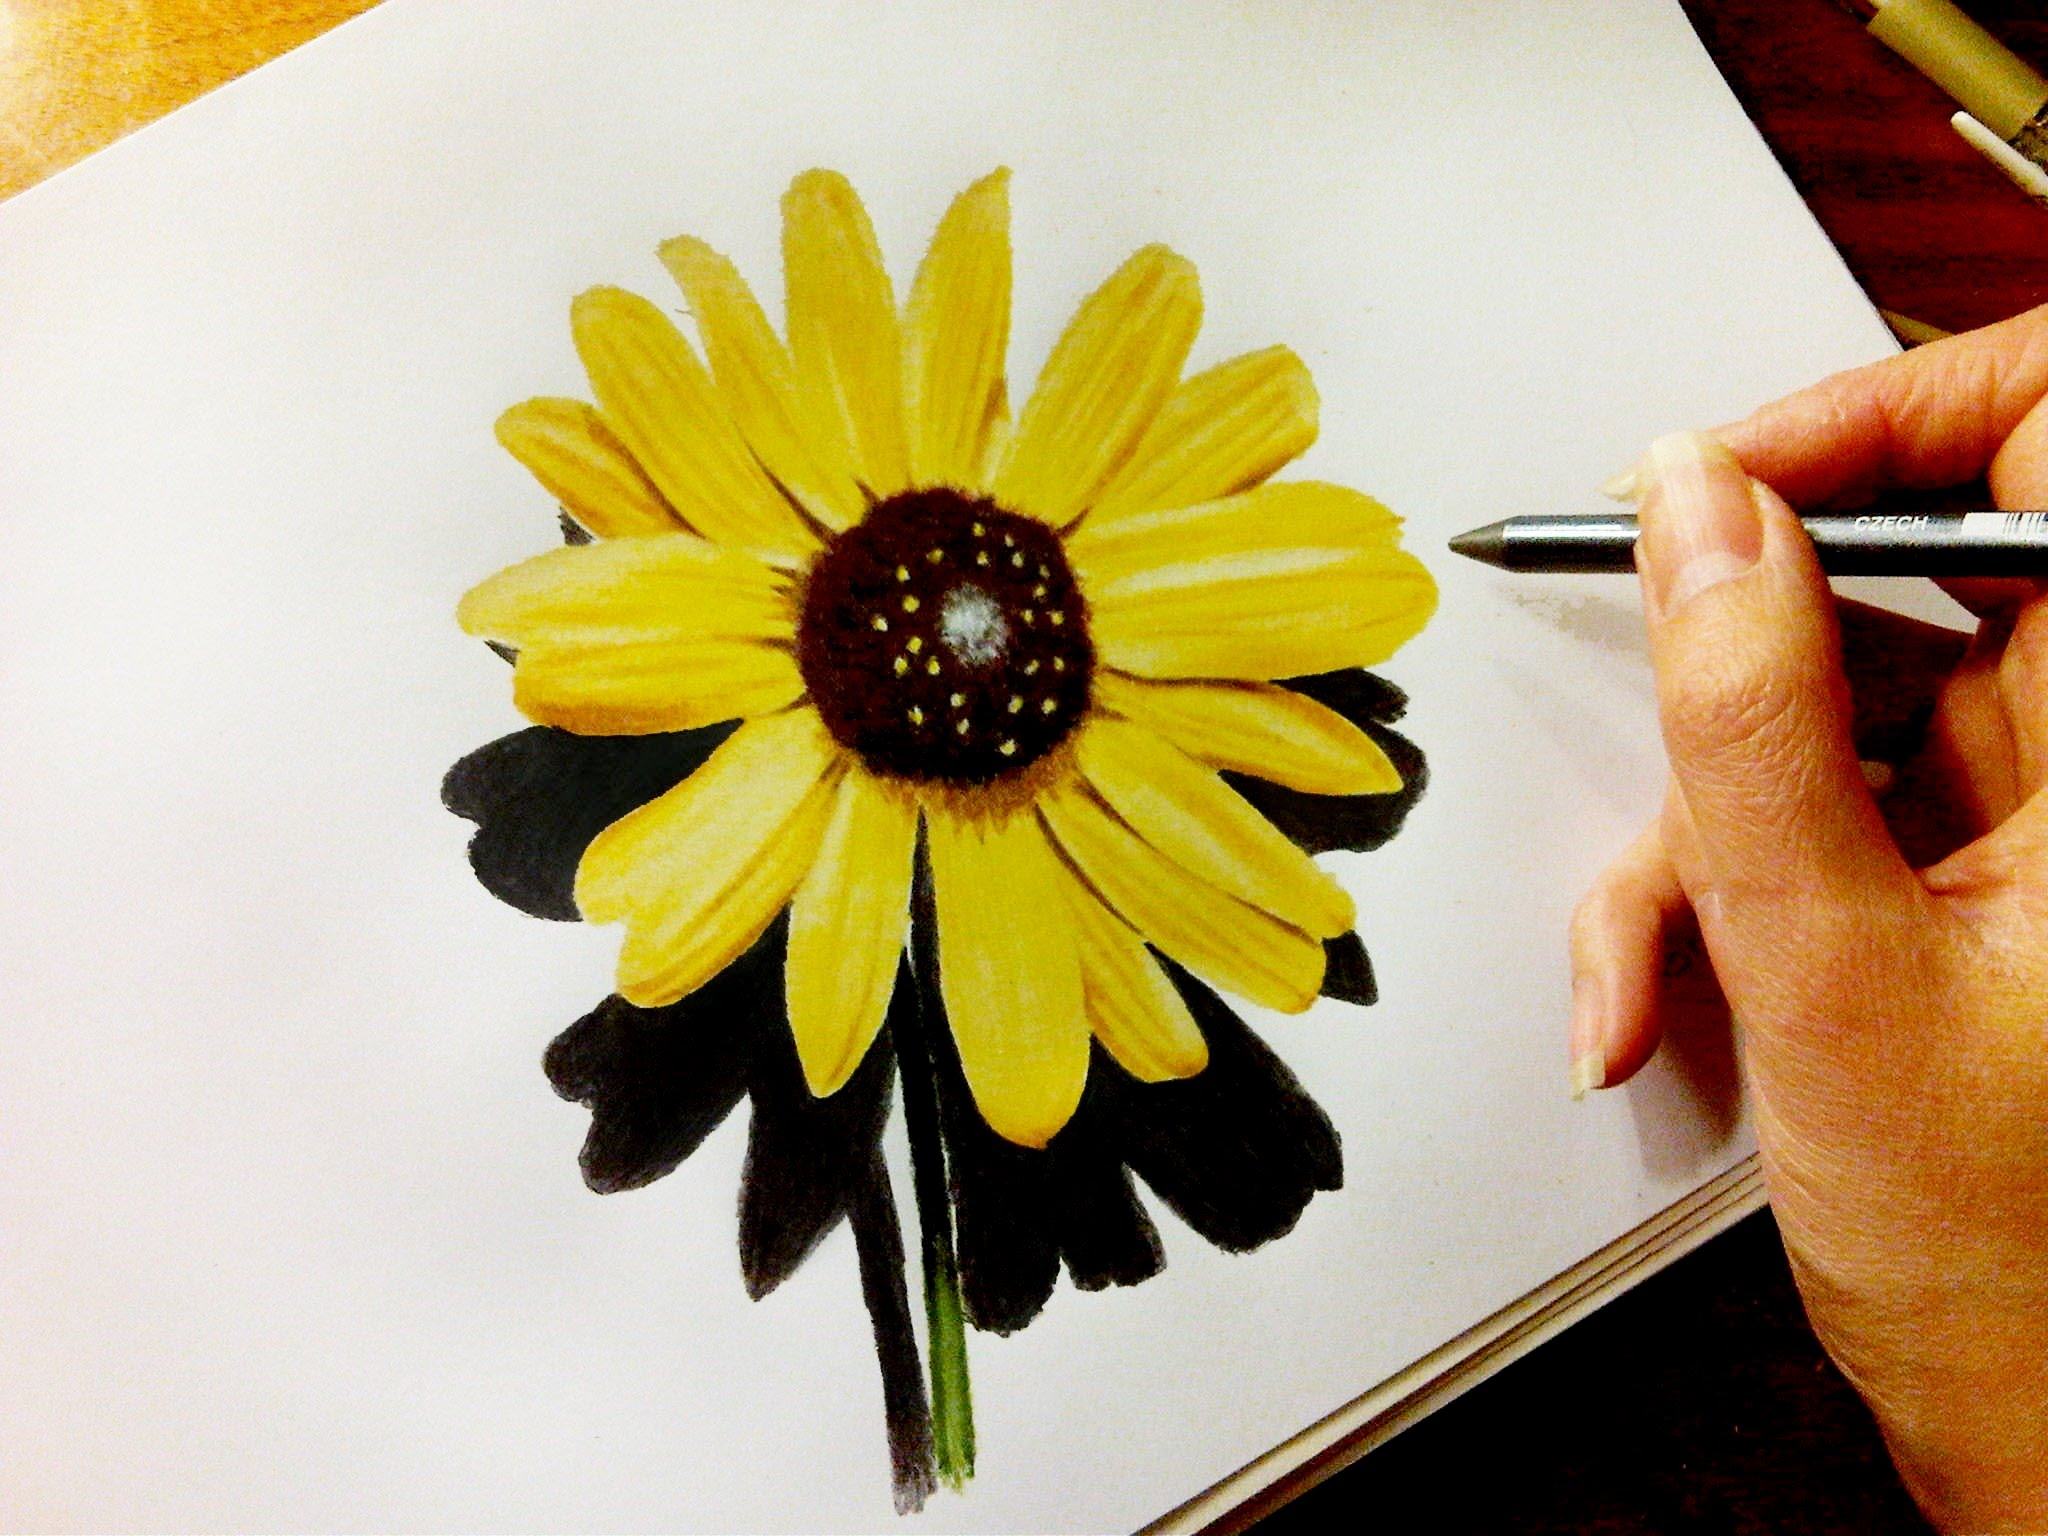 Sunflower Line Drawing : Sunflower drawing easy at getdrawings.com free for personal use